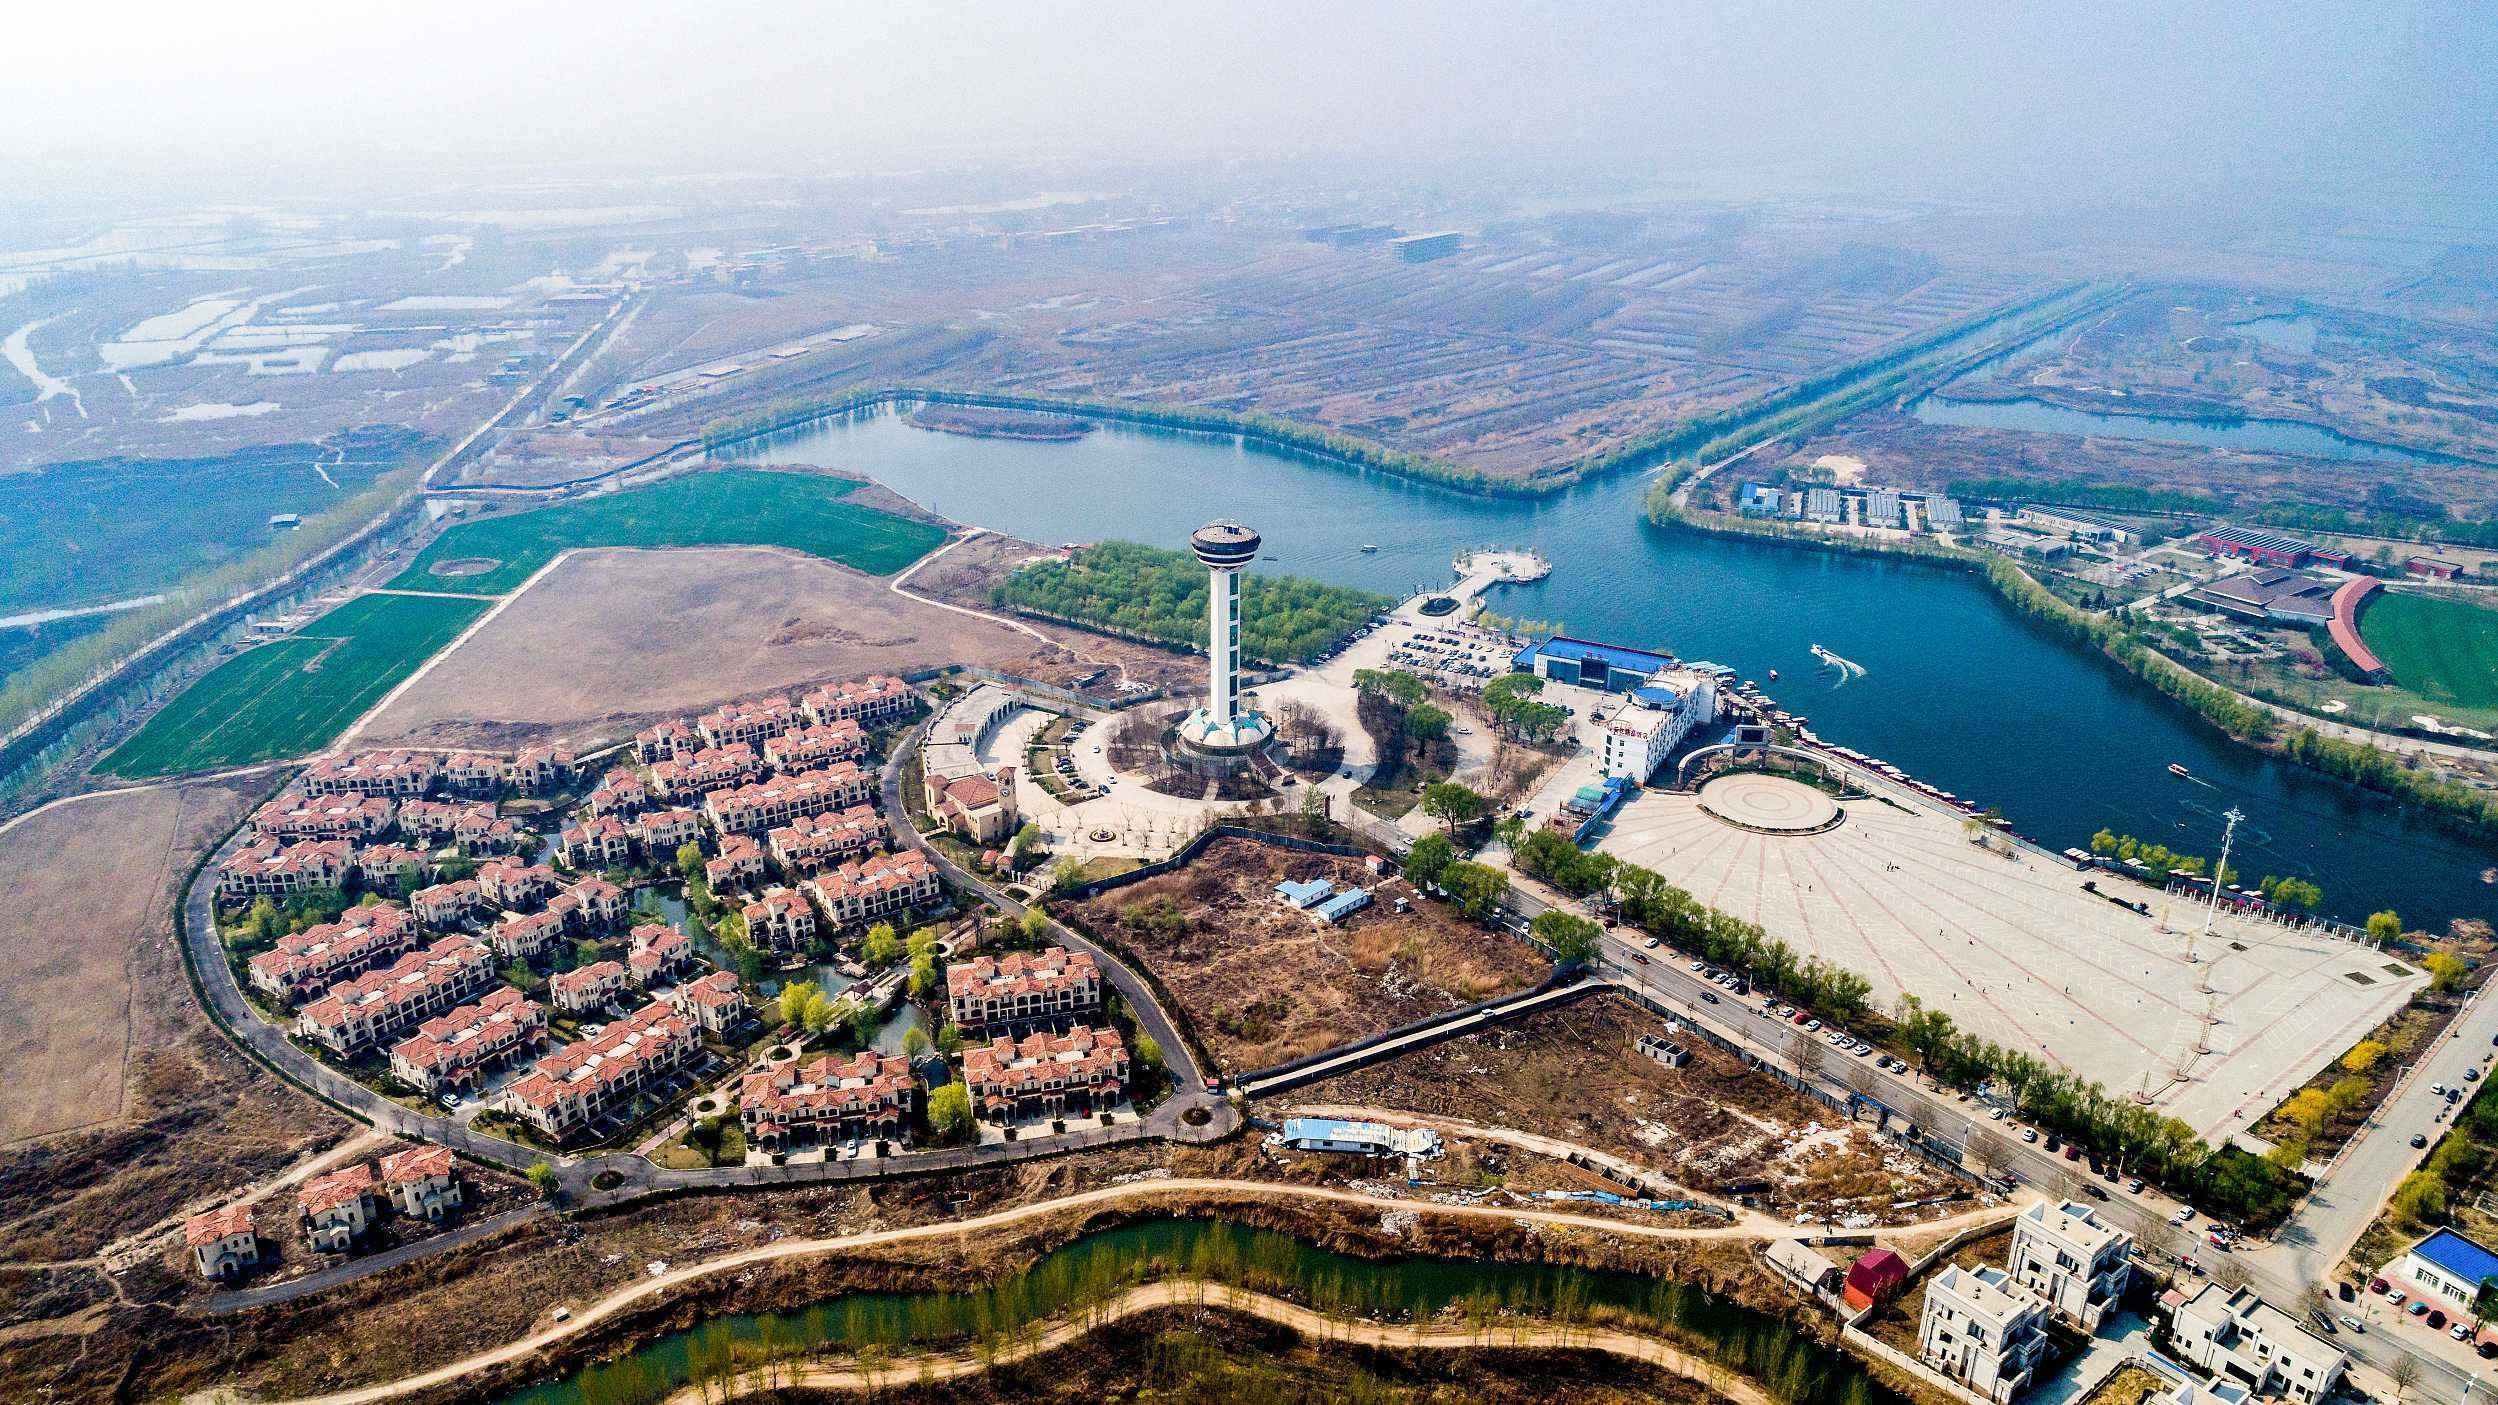 Tax refund offered to overseas tourists shopping in Xiongan